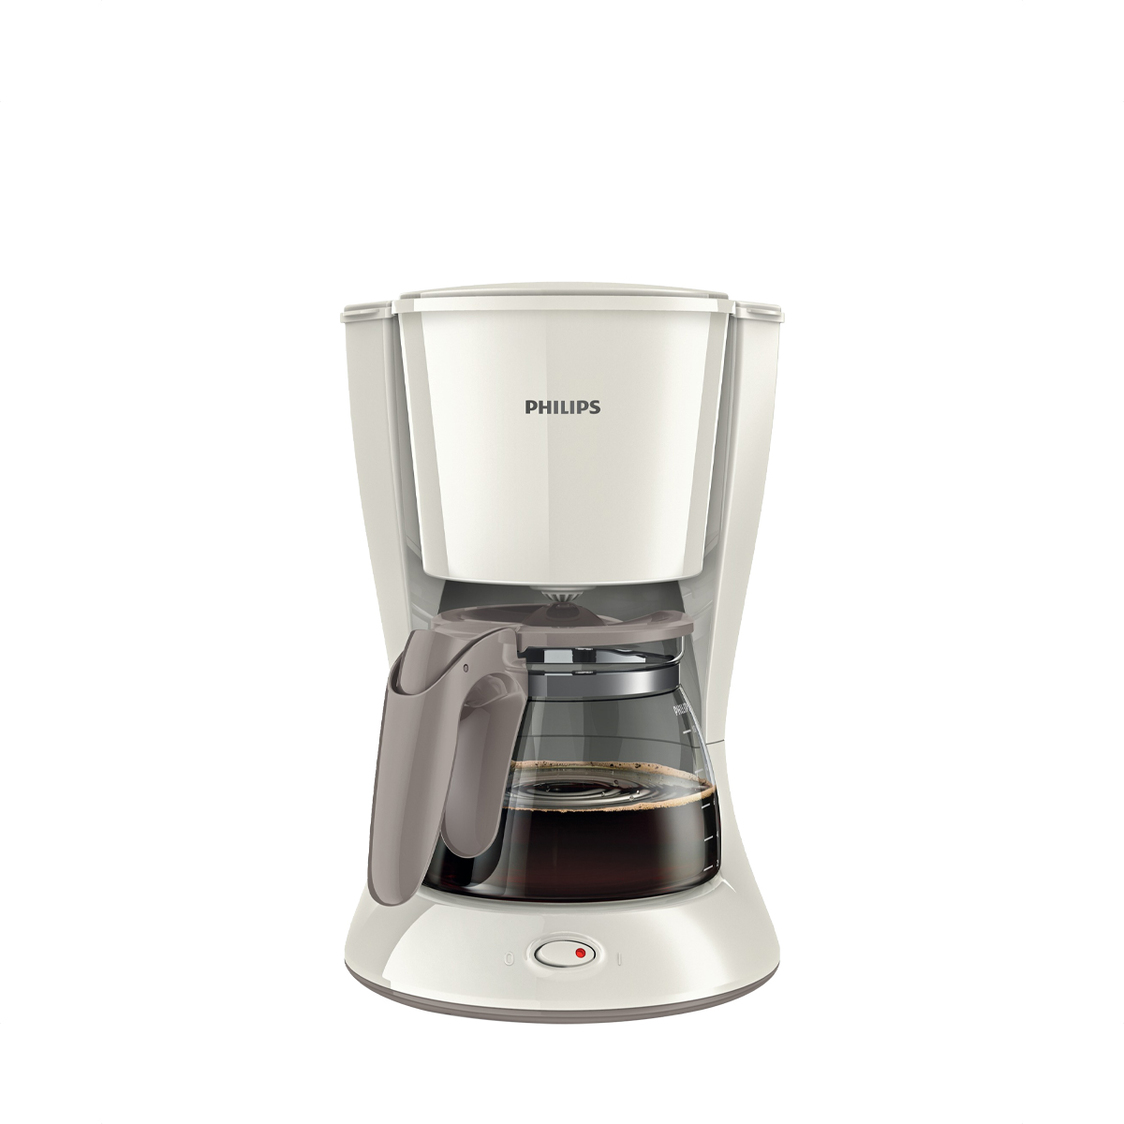 Philips 1.2L 10-15 Cups Basic Coffee Maker HD7447/00 Metro ...